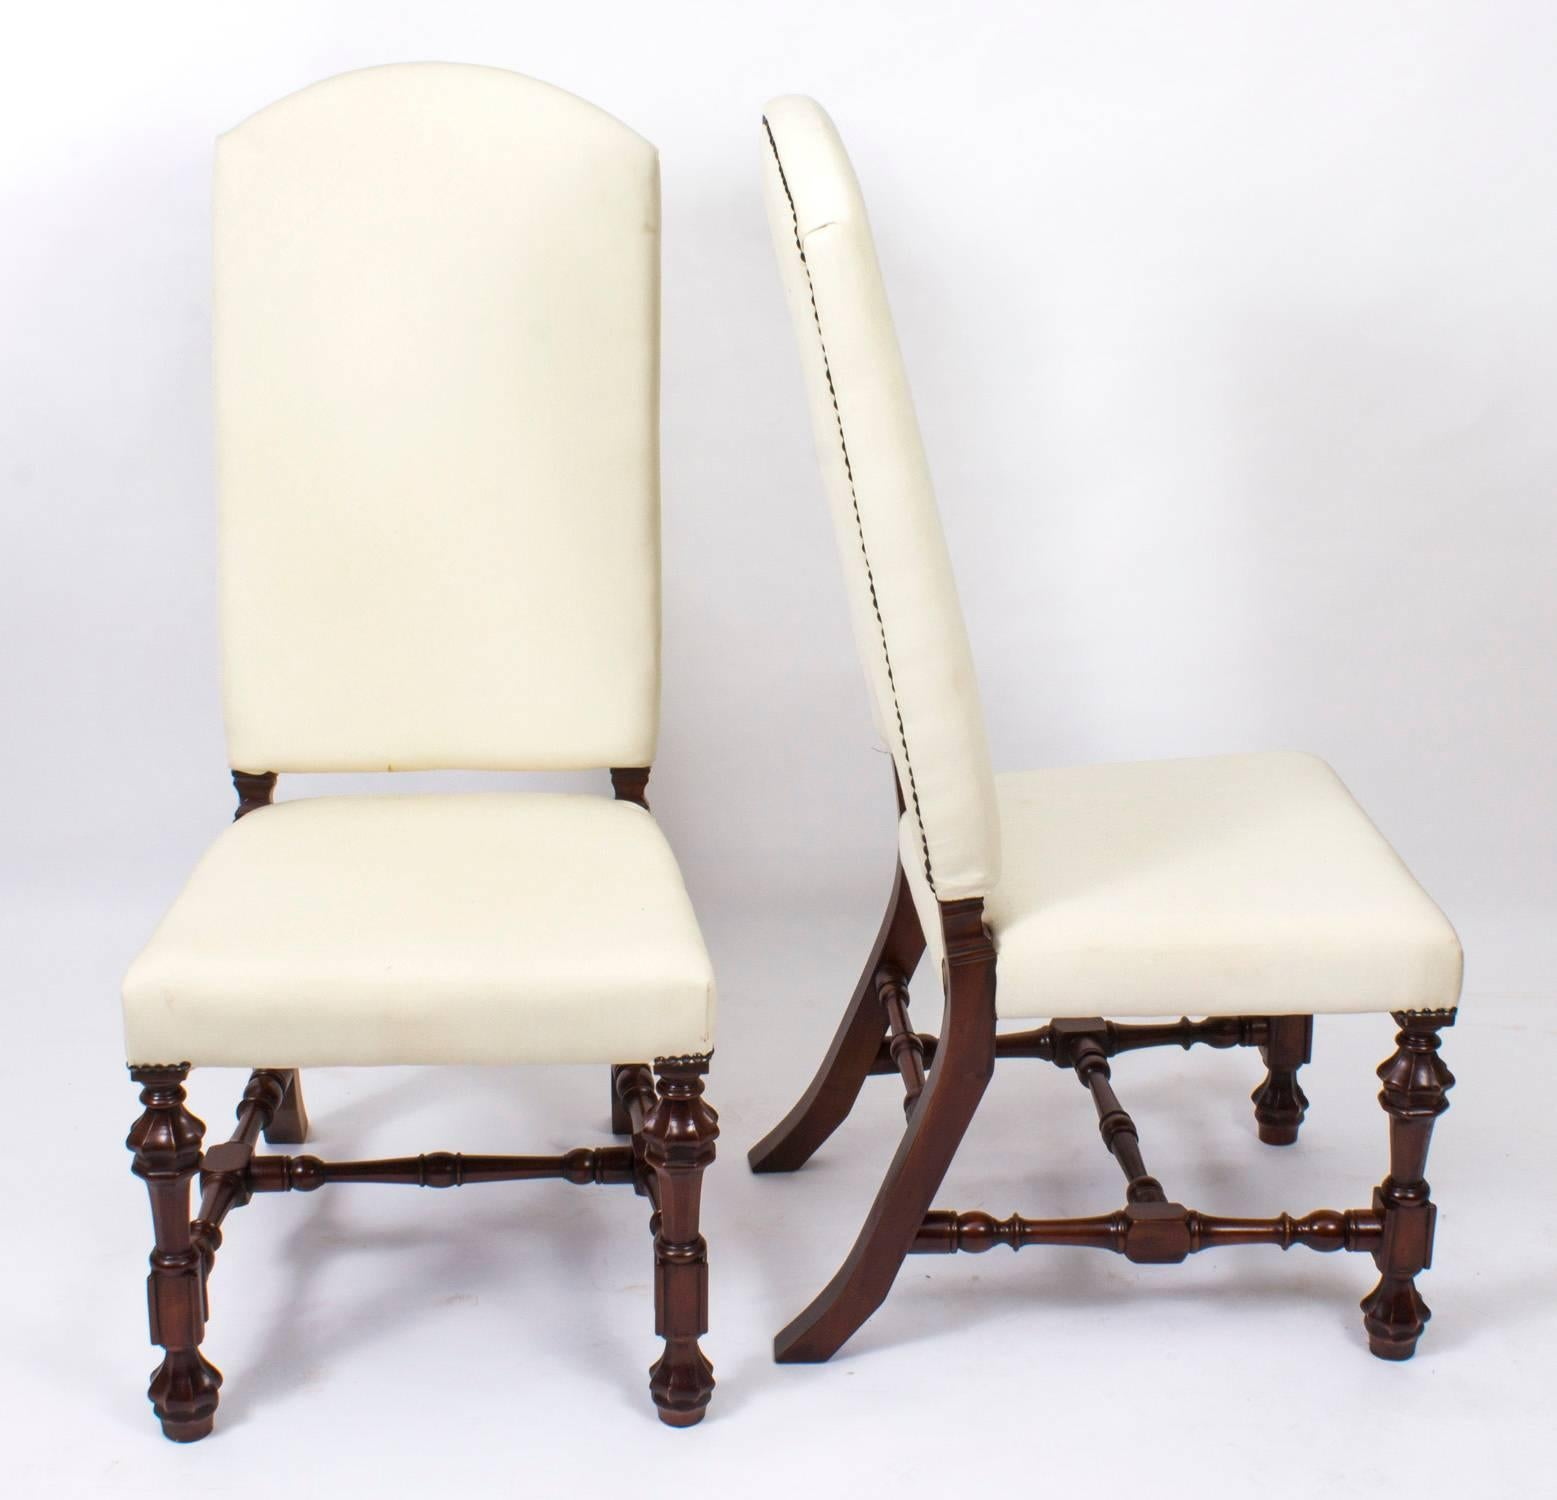 An Absolutely Fantastic English Made Set Of 12 Bespoke Padded High Back  Dining Chairs. These